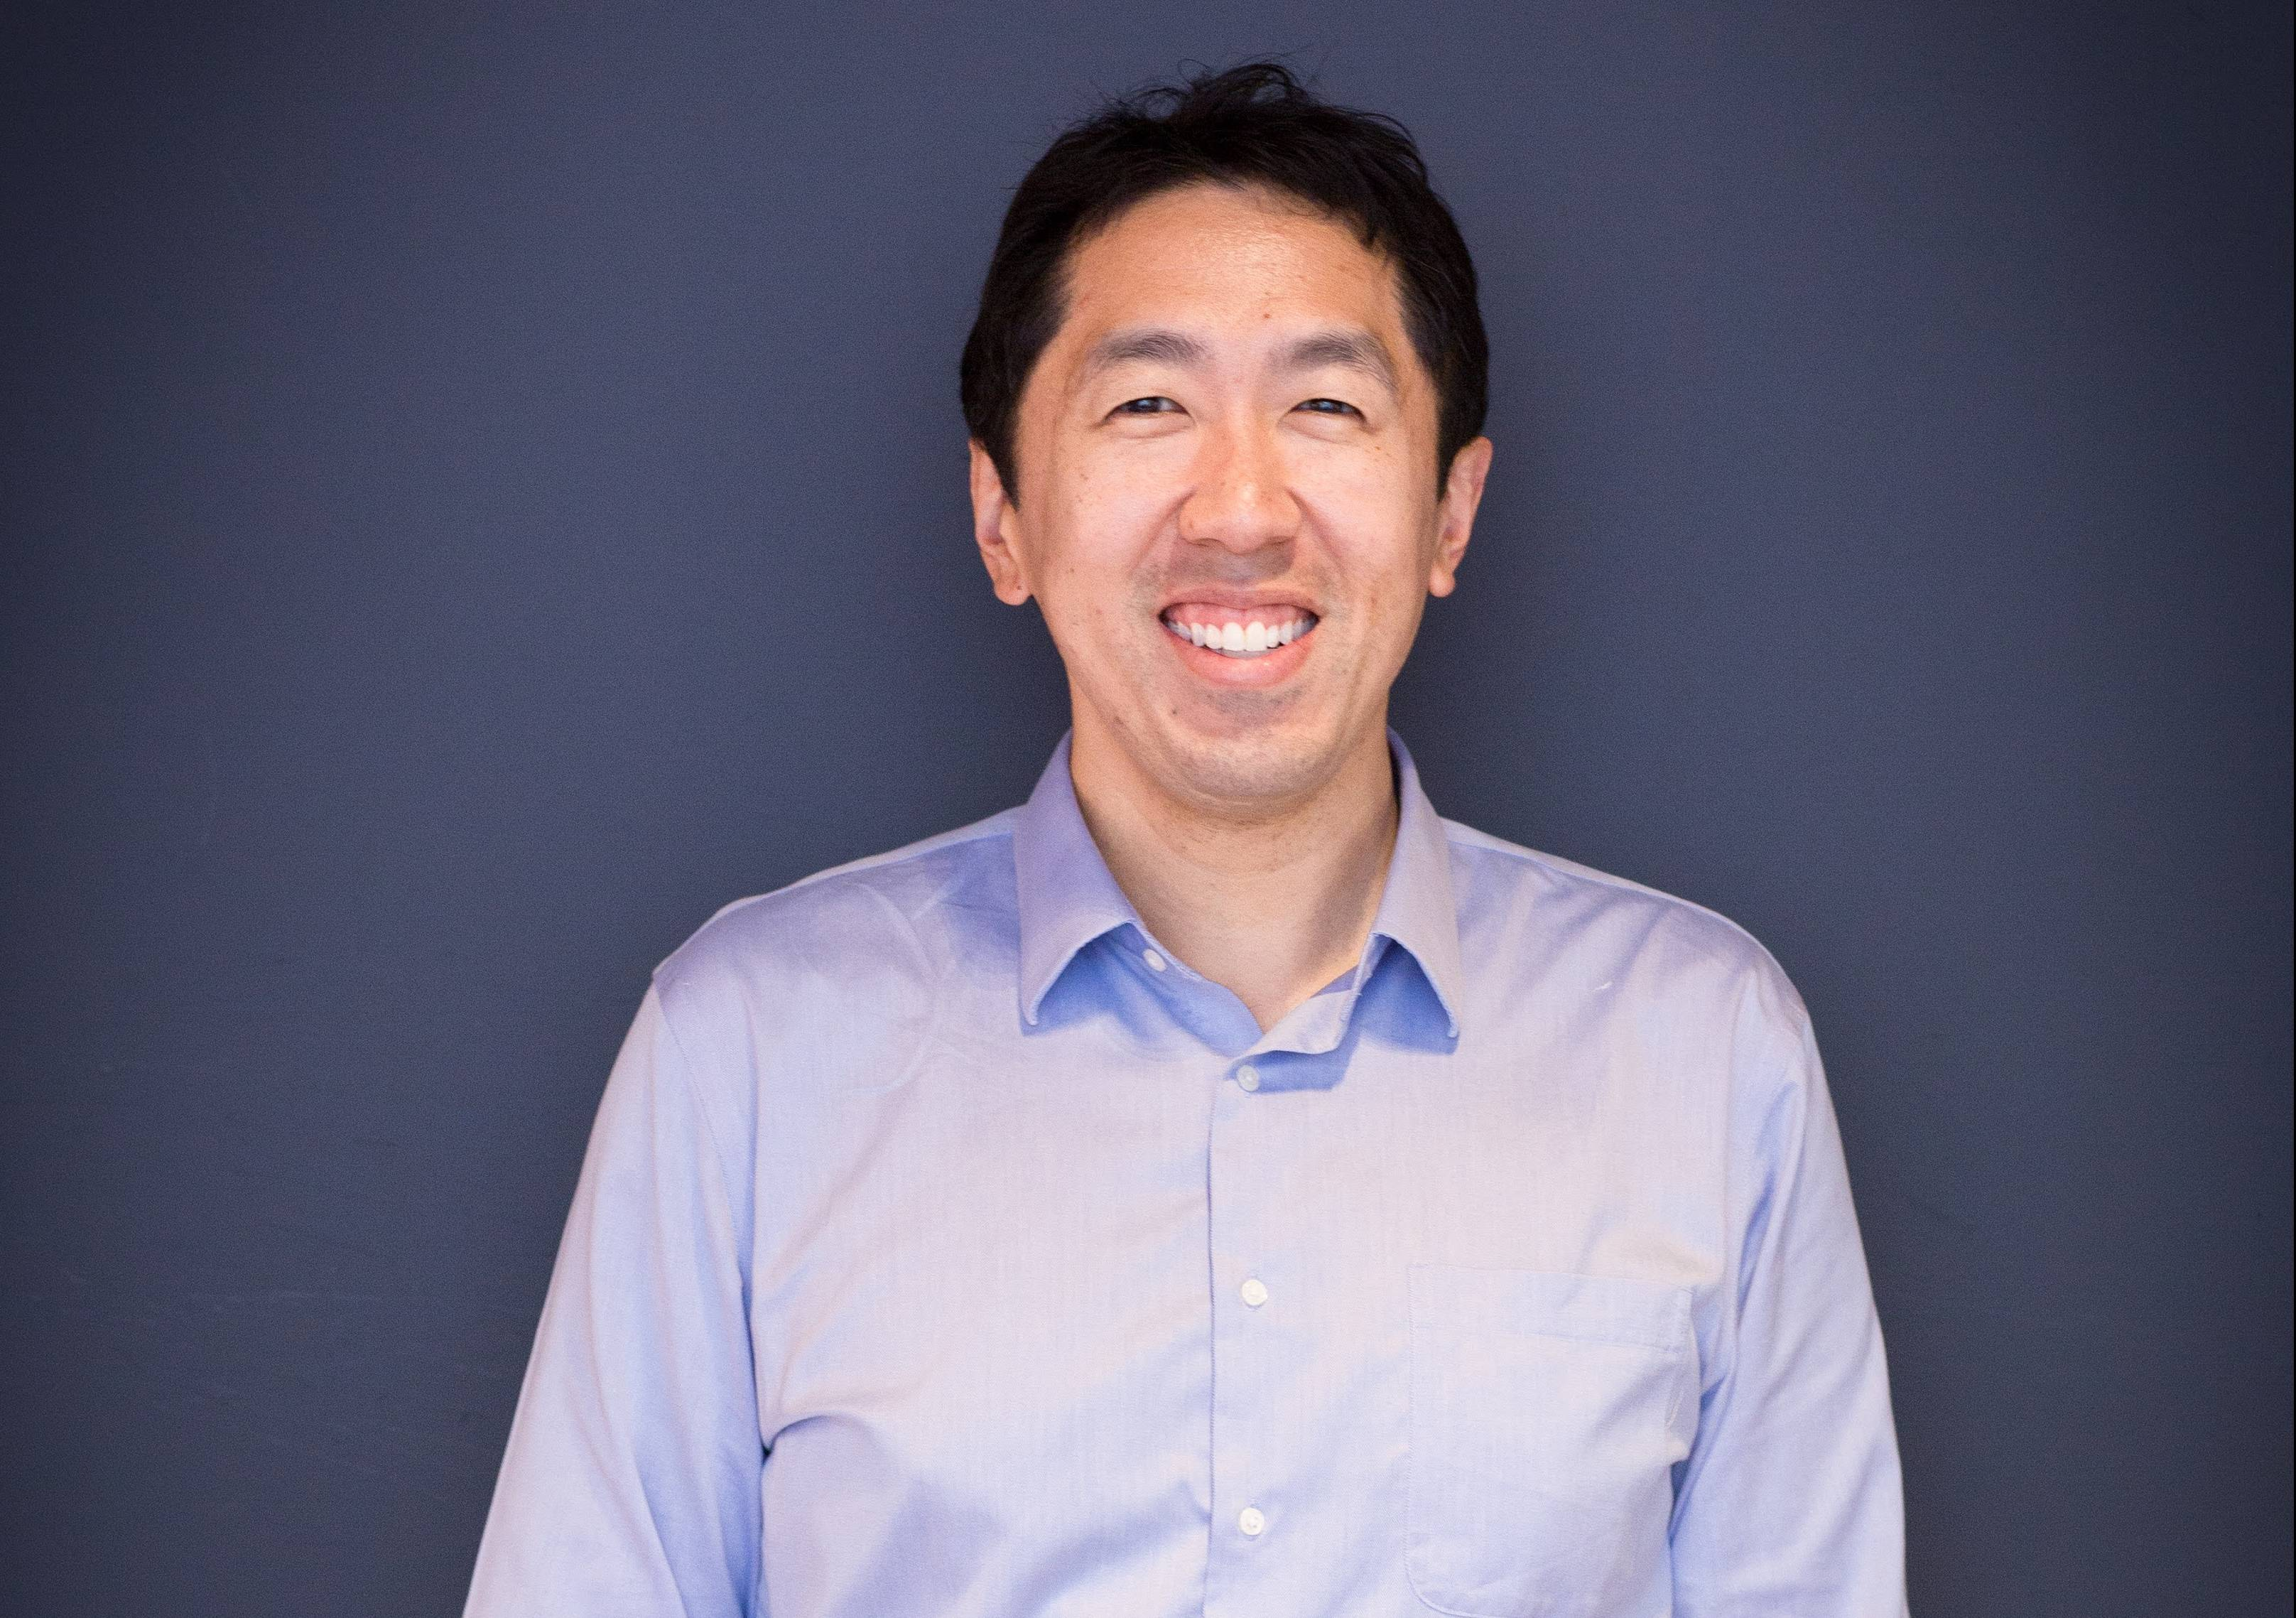 Andrew Ng, Stanford University professor, Baidu research head, and Google Brain co-founder